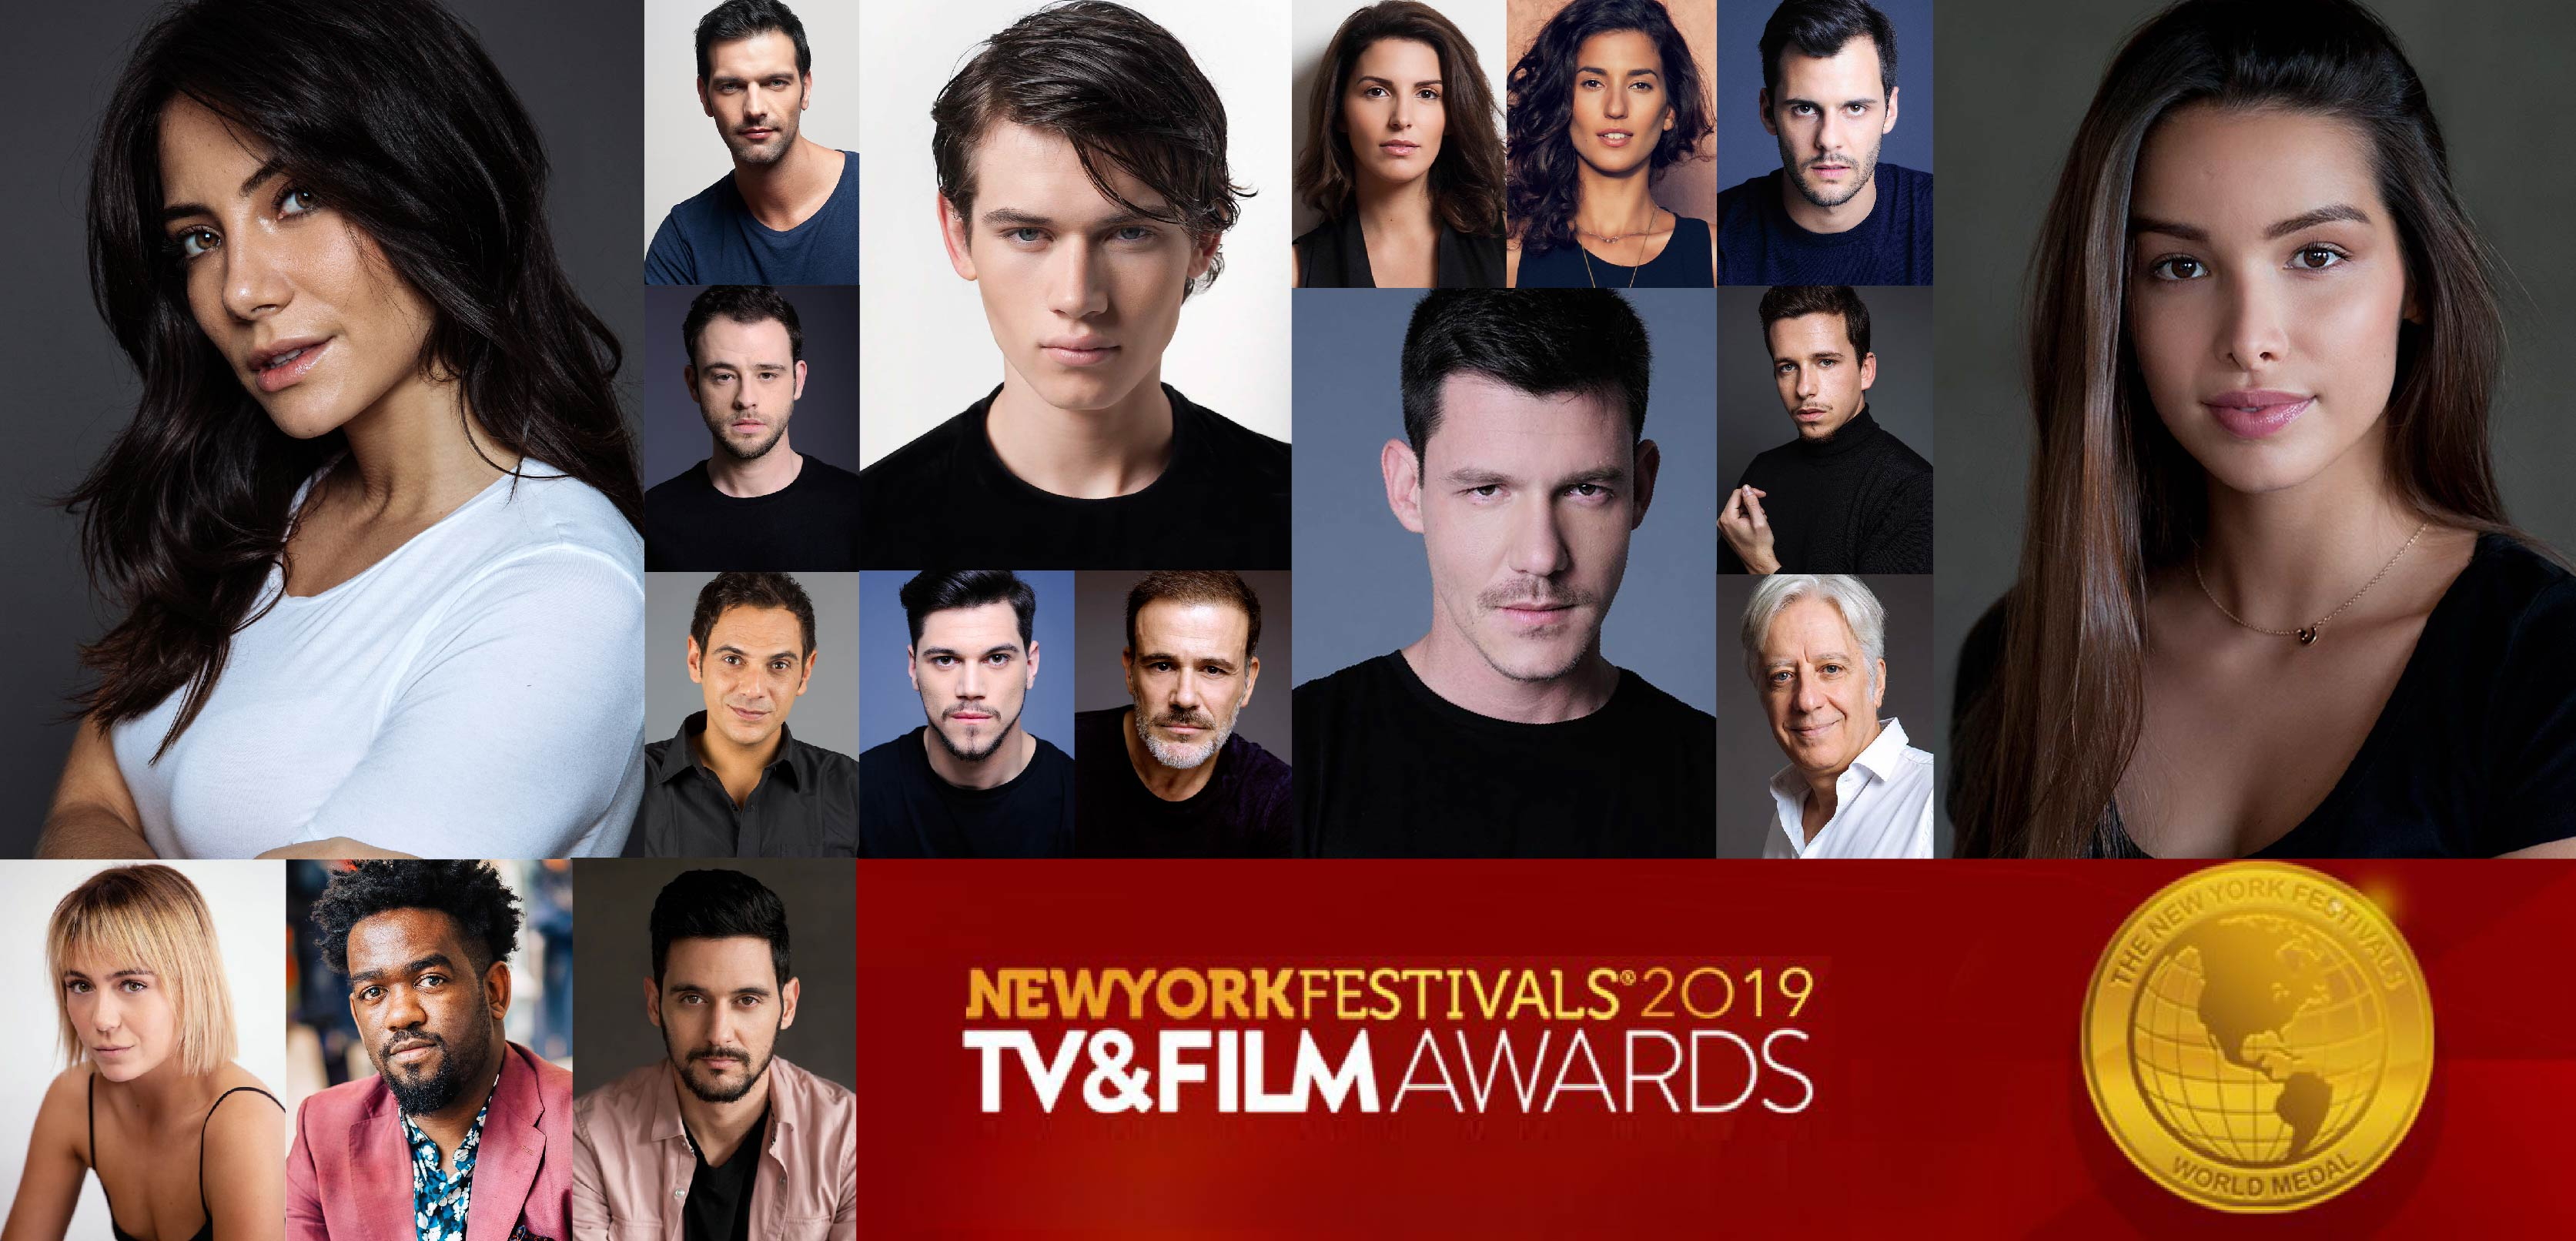 """Vidas Opostas"" ganhou a medalha e Bronze no NewYork Festivals International TV & Film Awards 2019 em Las Vegas."